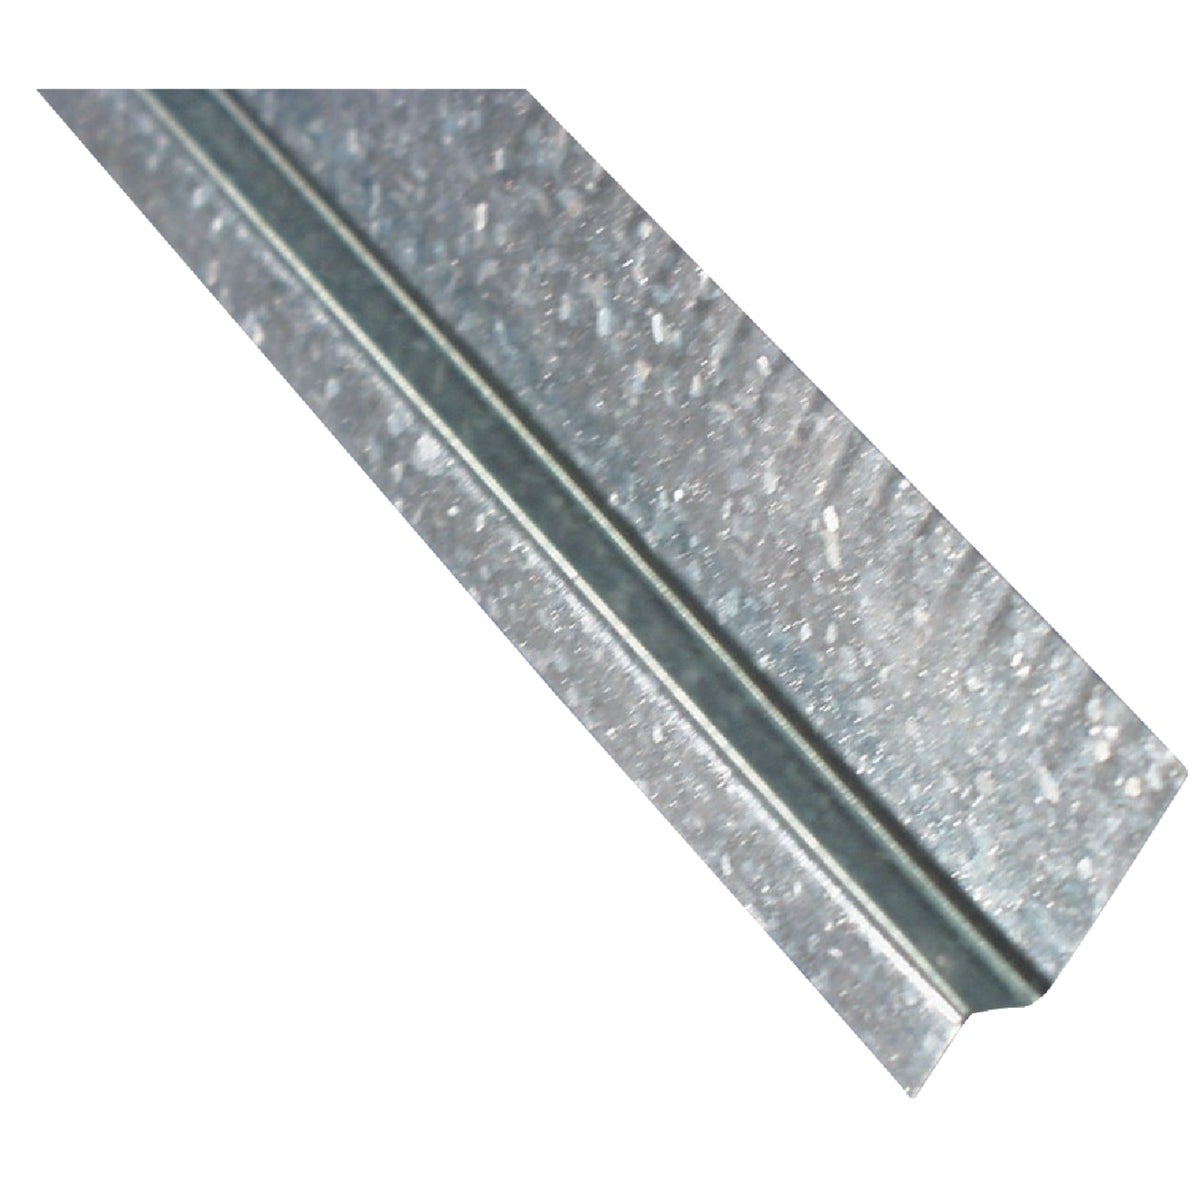 "3/8"" Z-BAR METAL ANGLE - 5651400120 by Amerimax Home Prod"